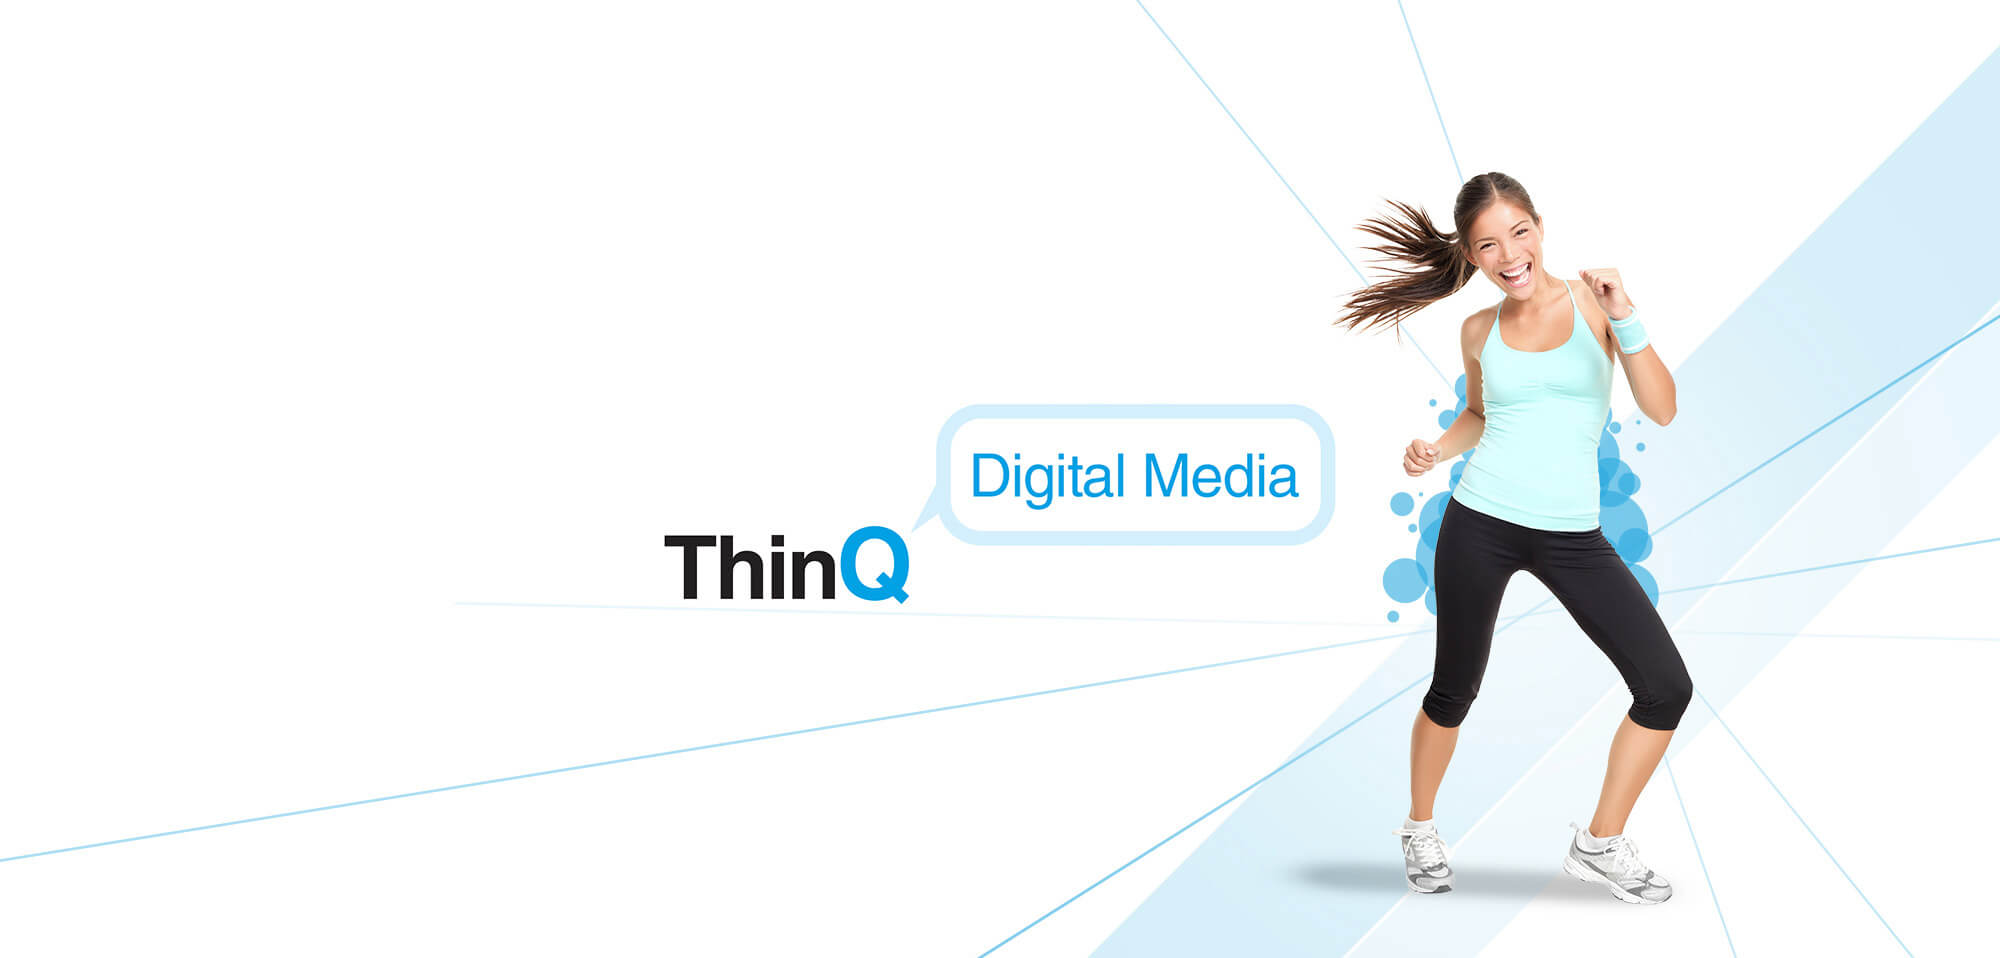 ThinQ Digital Media